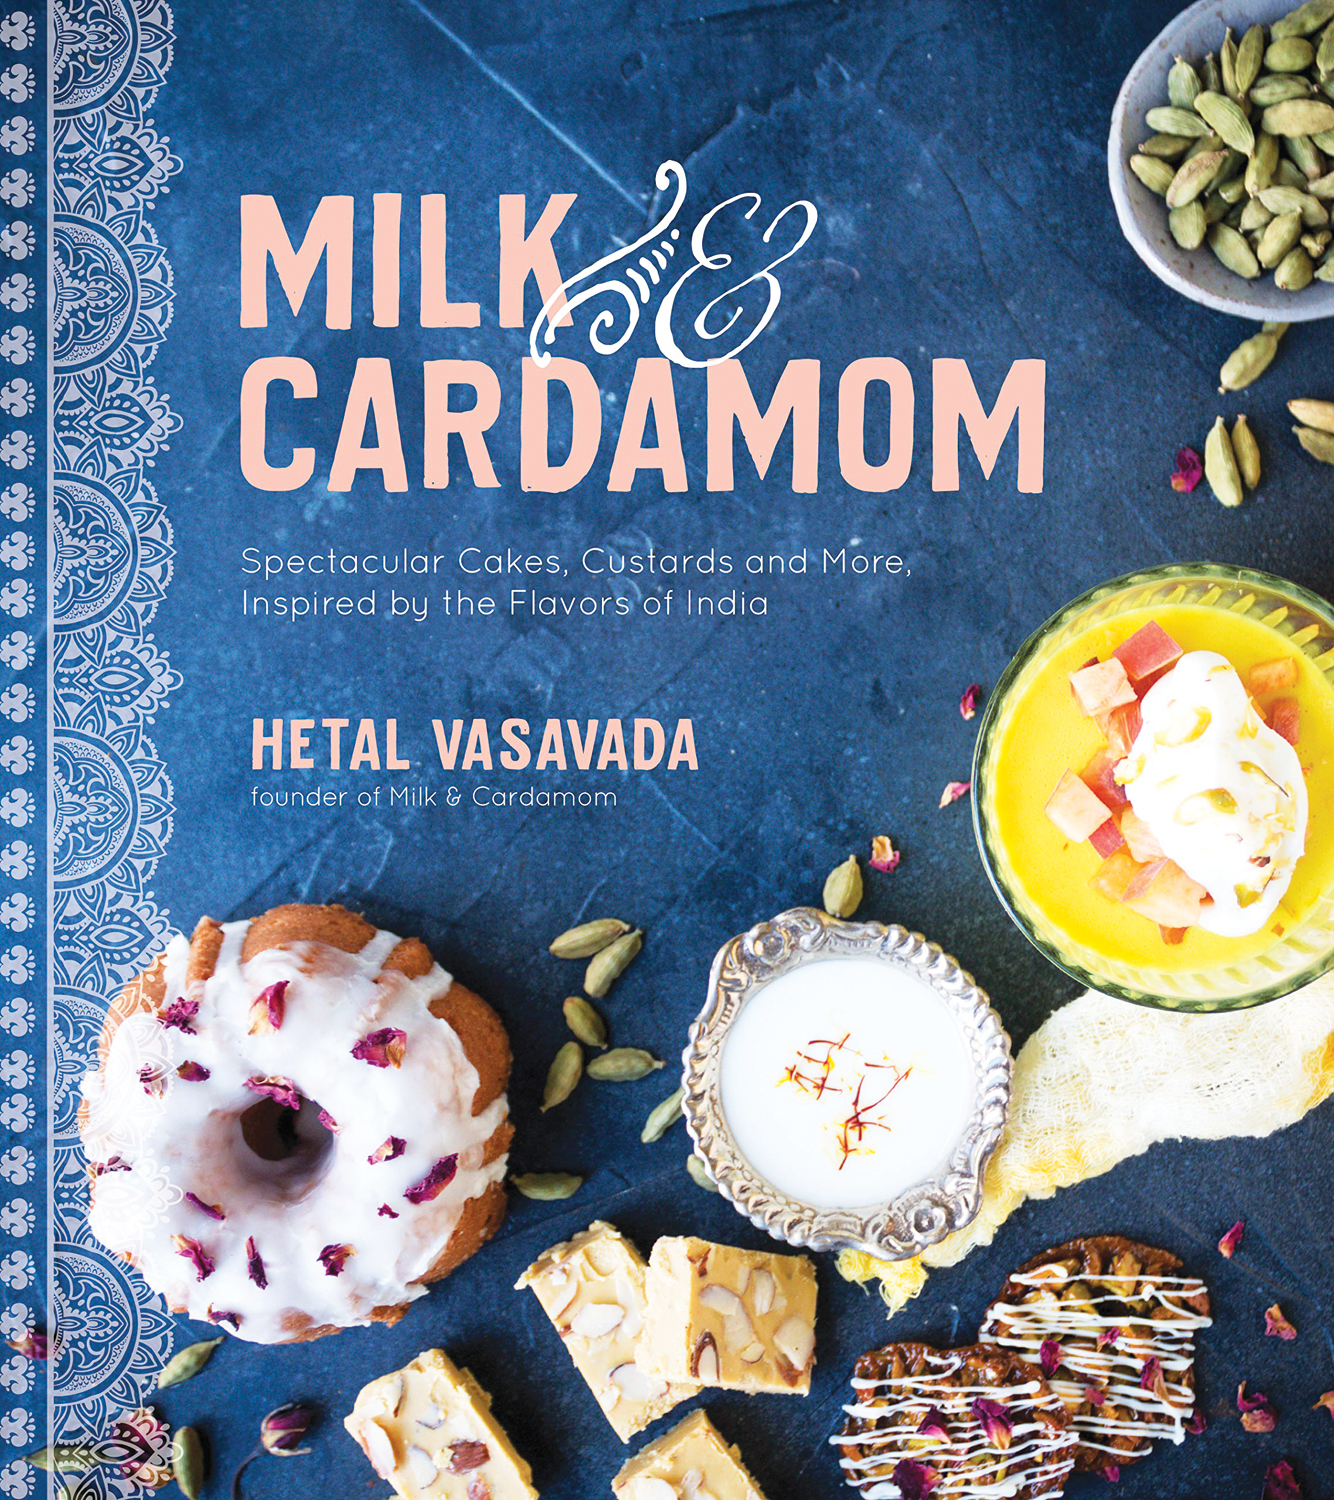 Milk & Cardamom  by Hetal Vasavada is published by Page Street, USD 21.99.